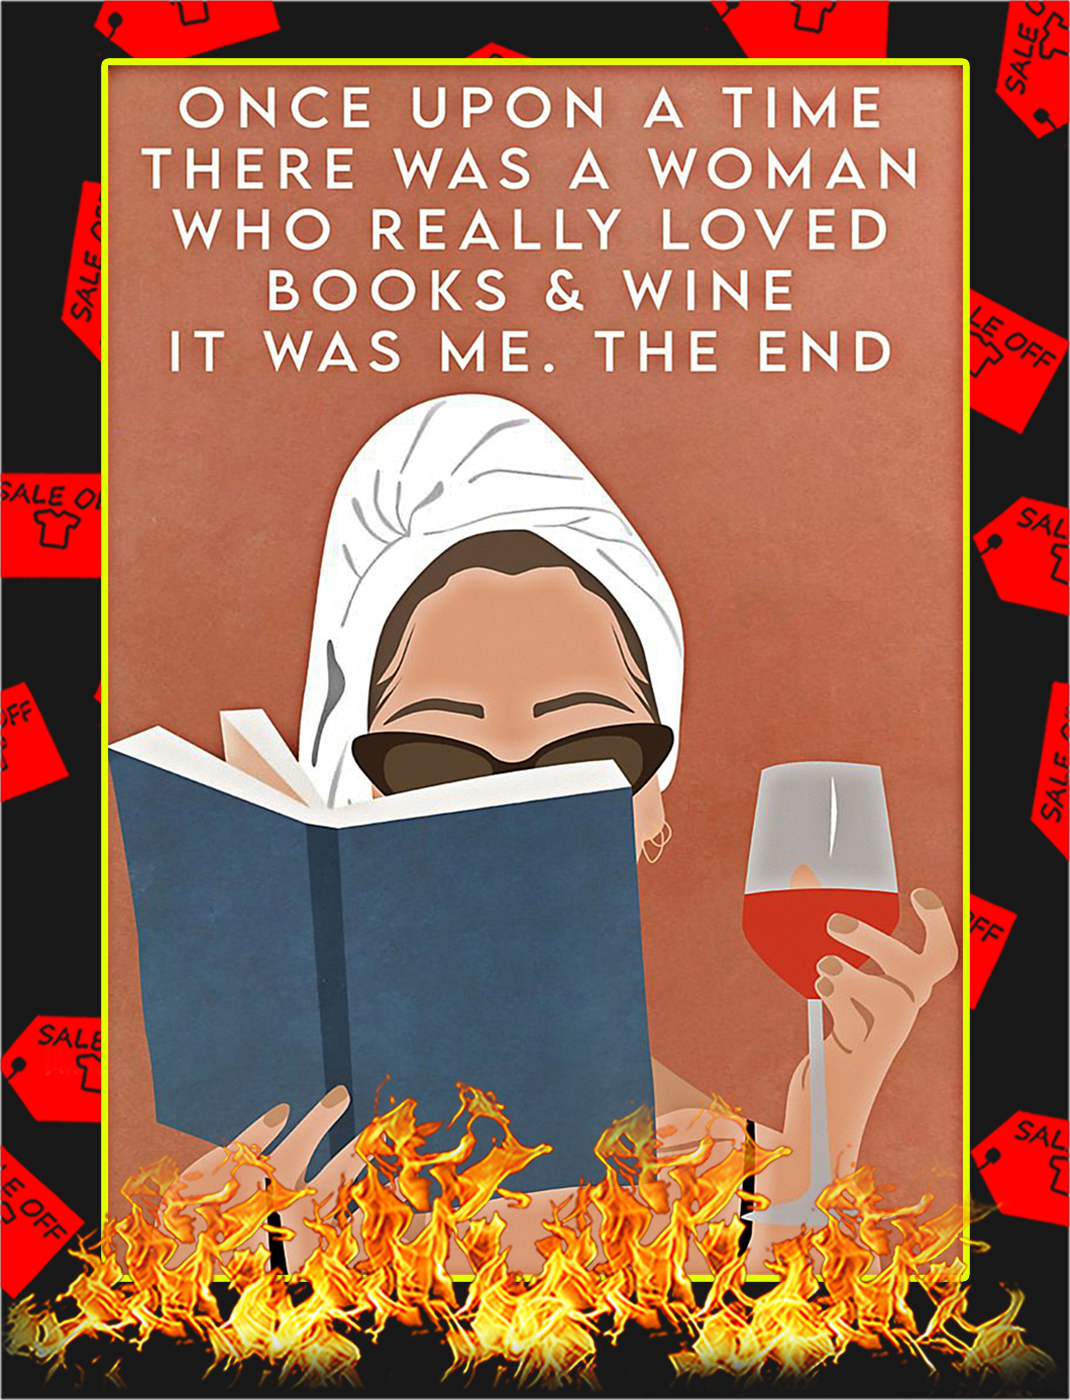 Once upon a time there was a woman loved books and wine poster - A4